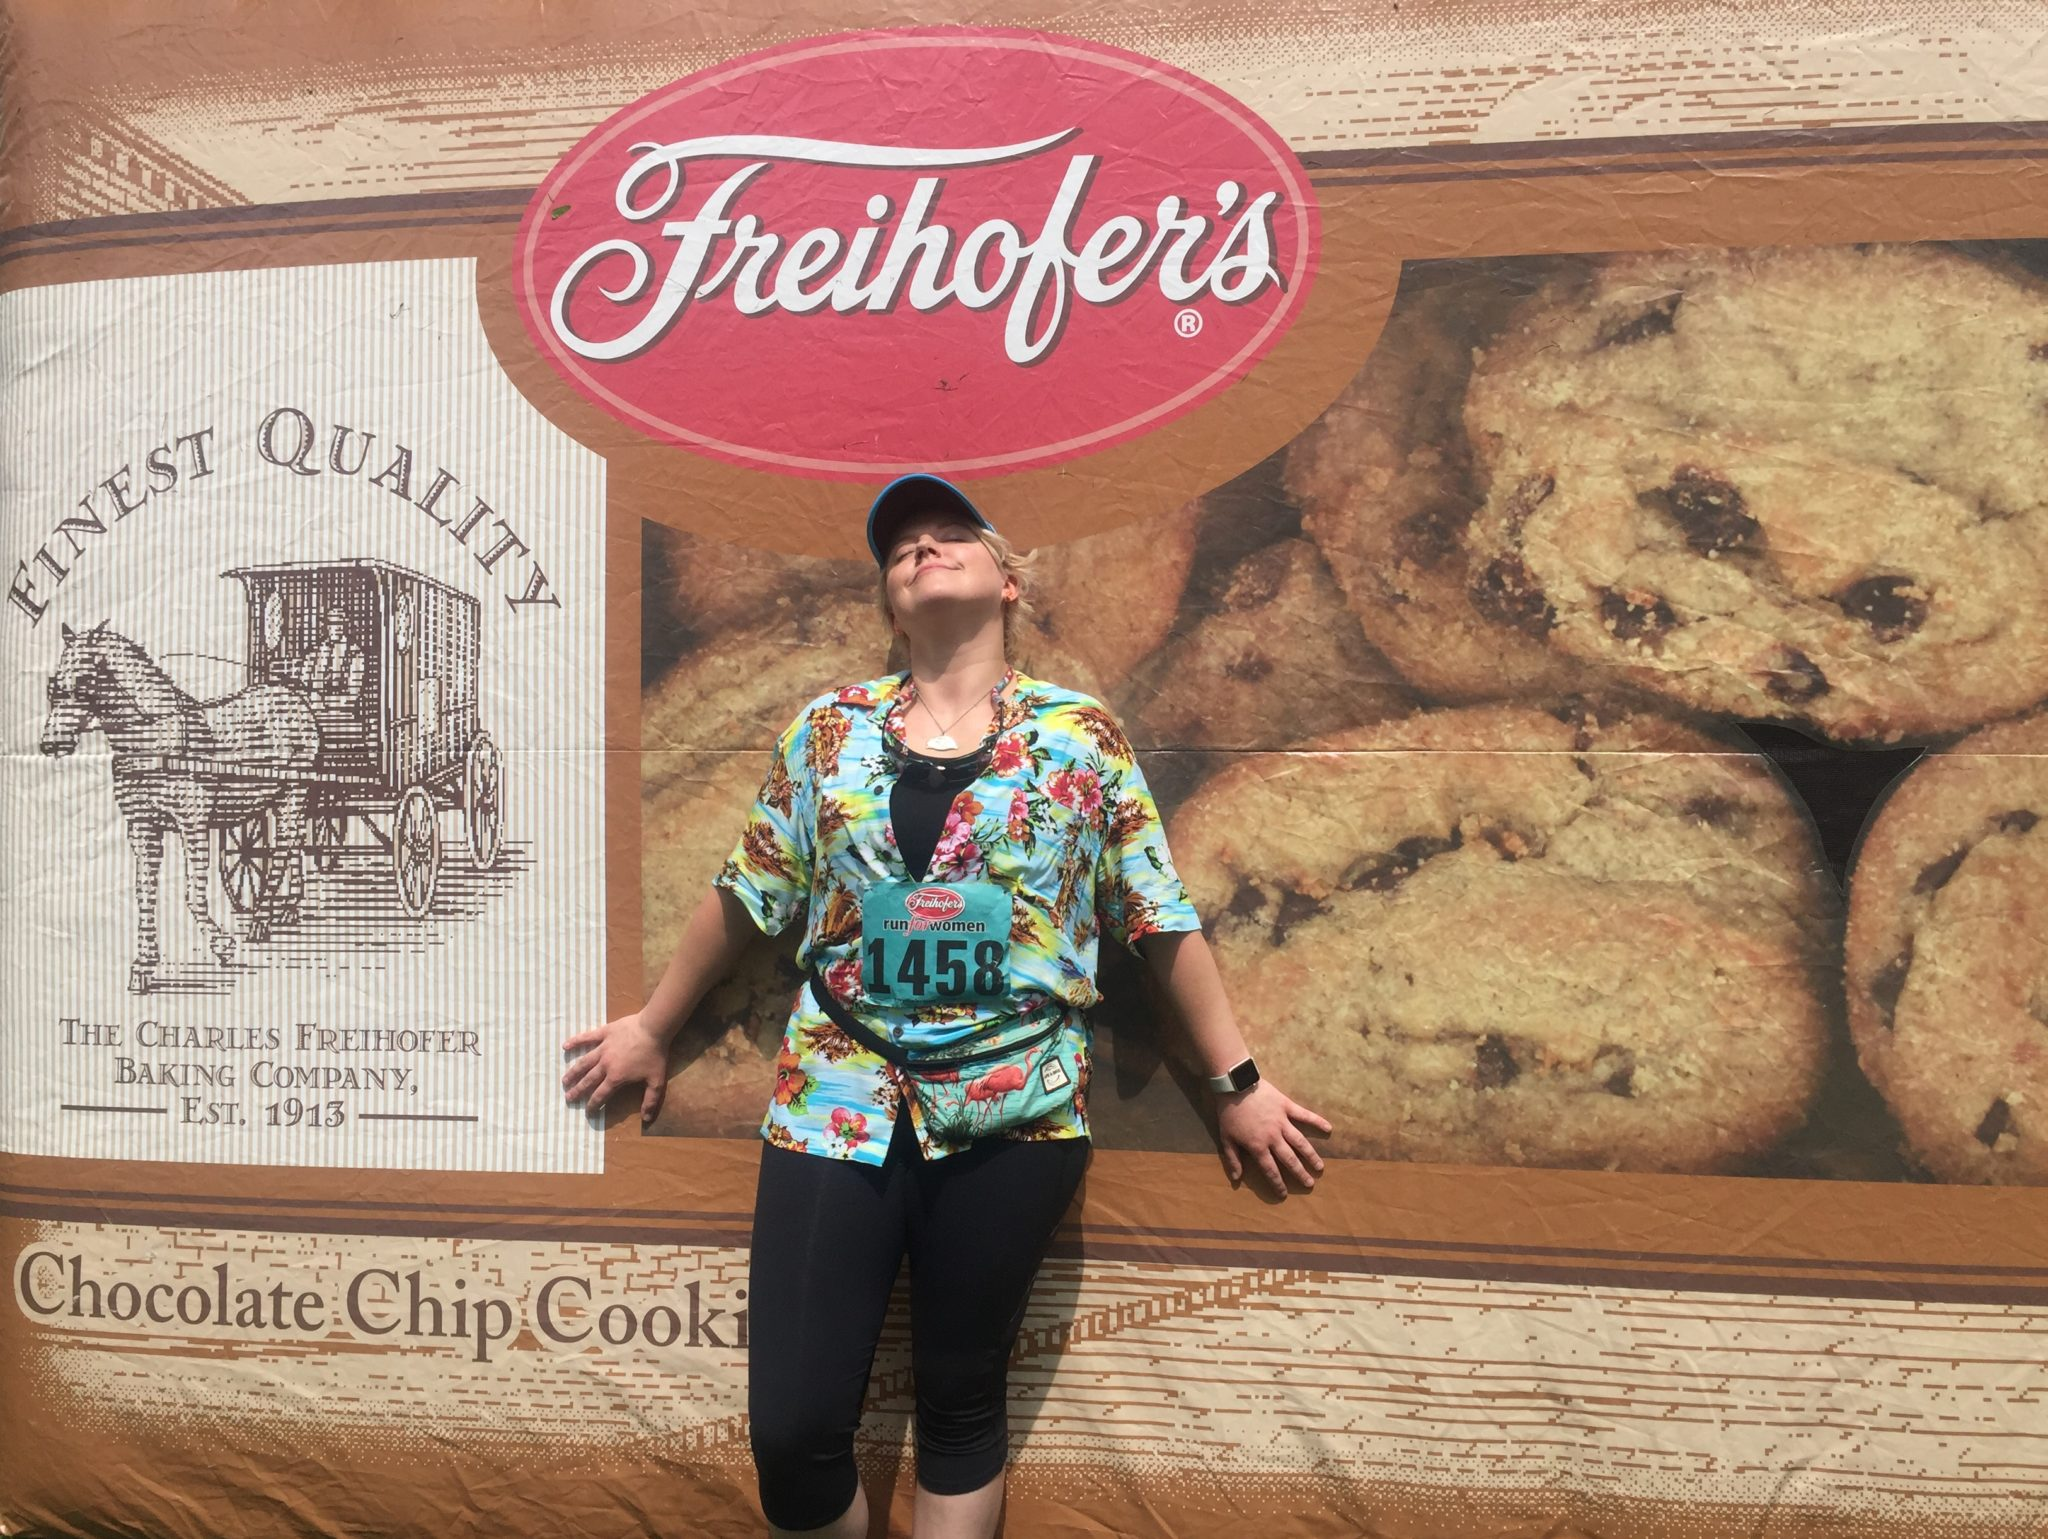 One Tough Cookie: I Went Two Buttons Deep at the Freihofer's Run for Women